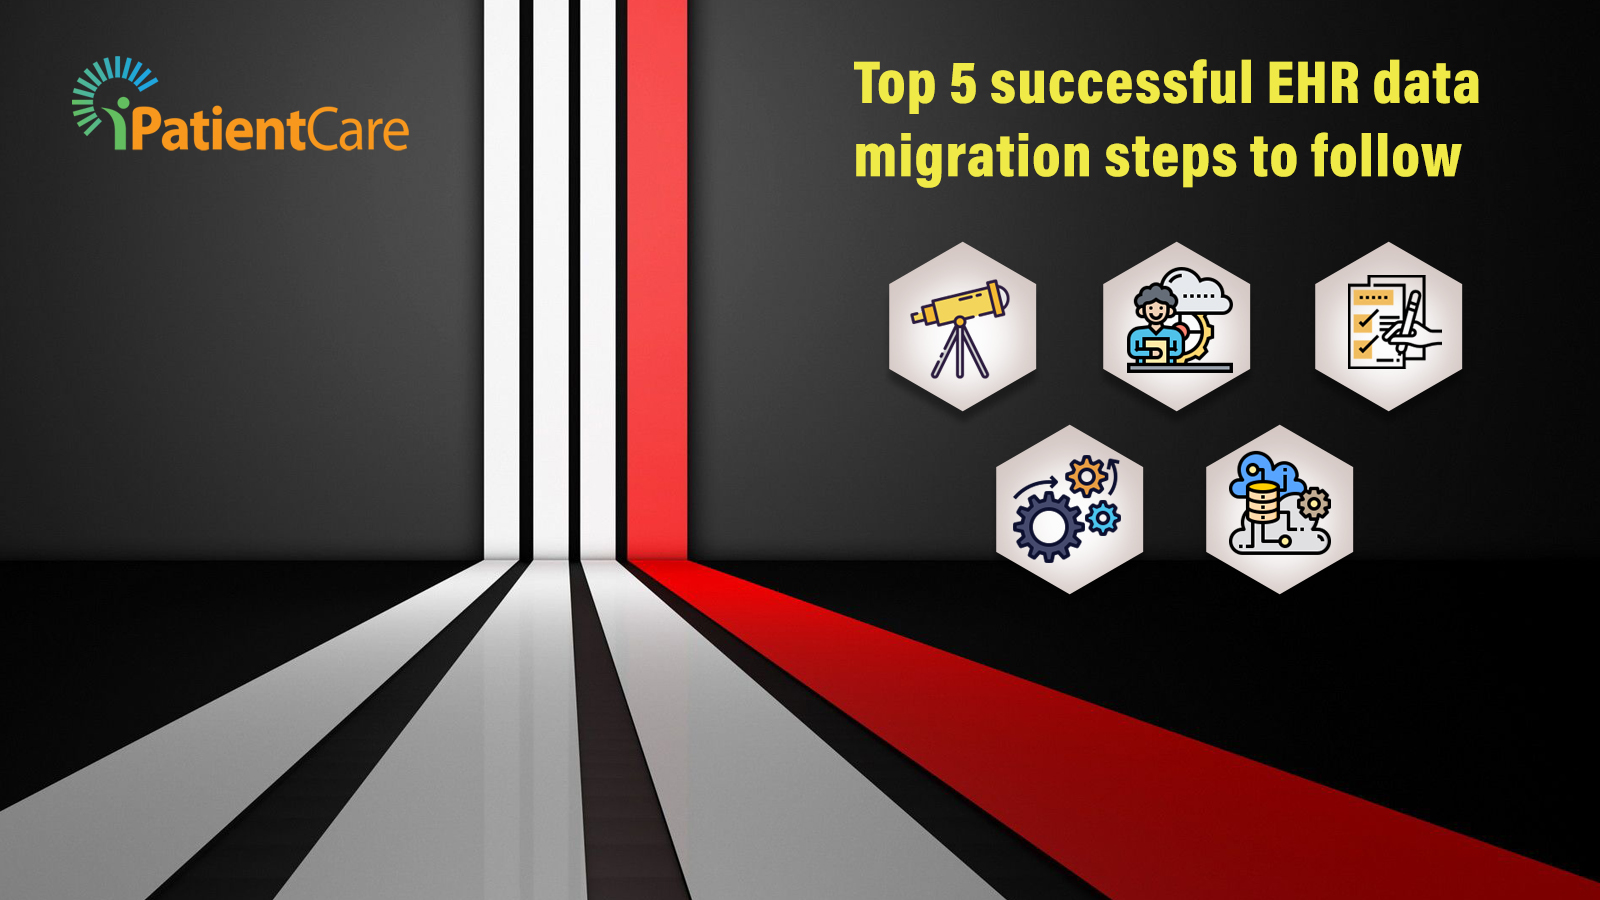 Top 5 successful EHR data migration steps to follow